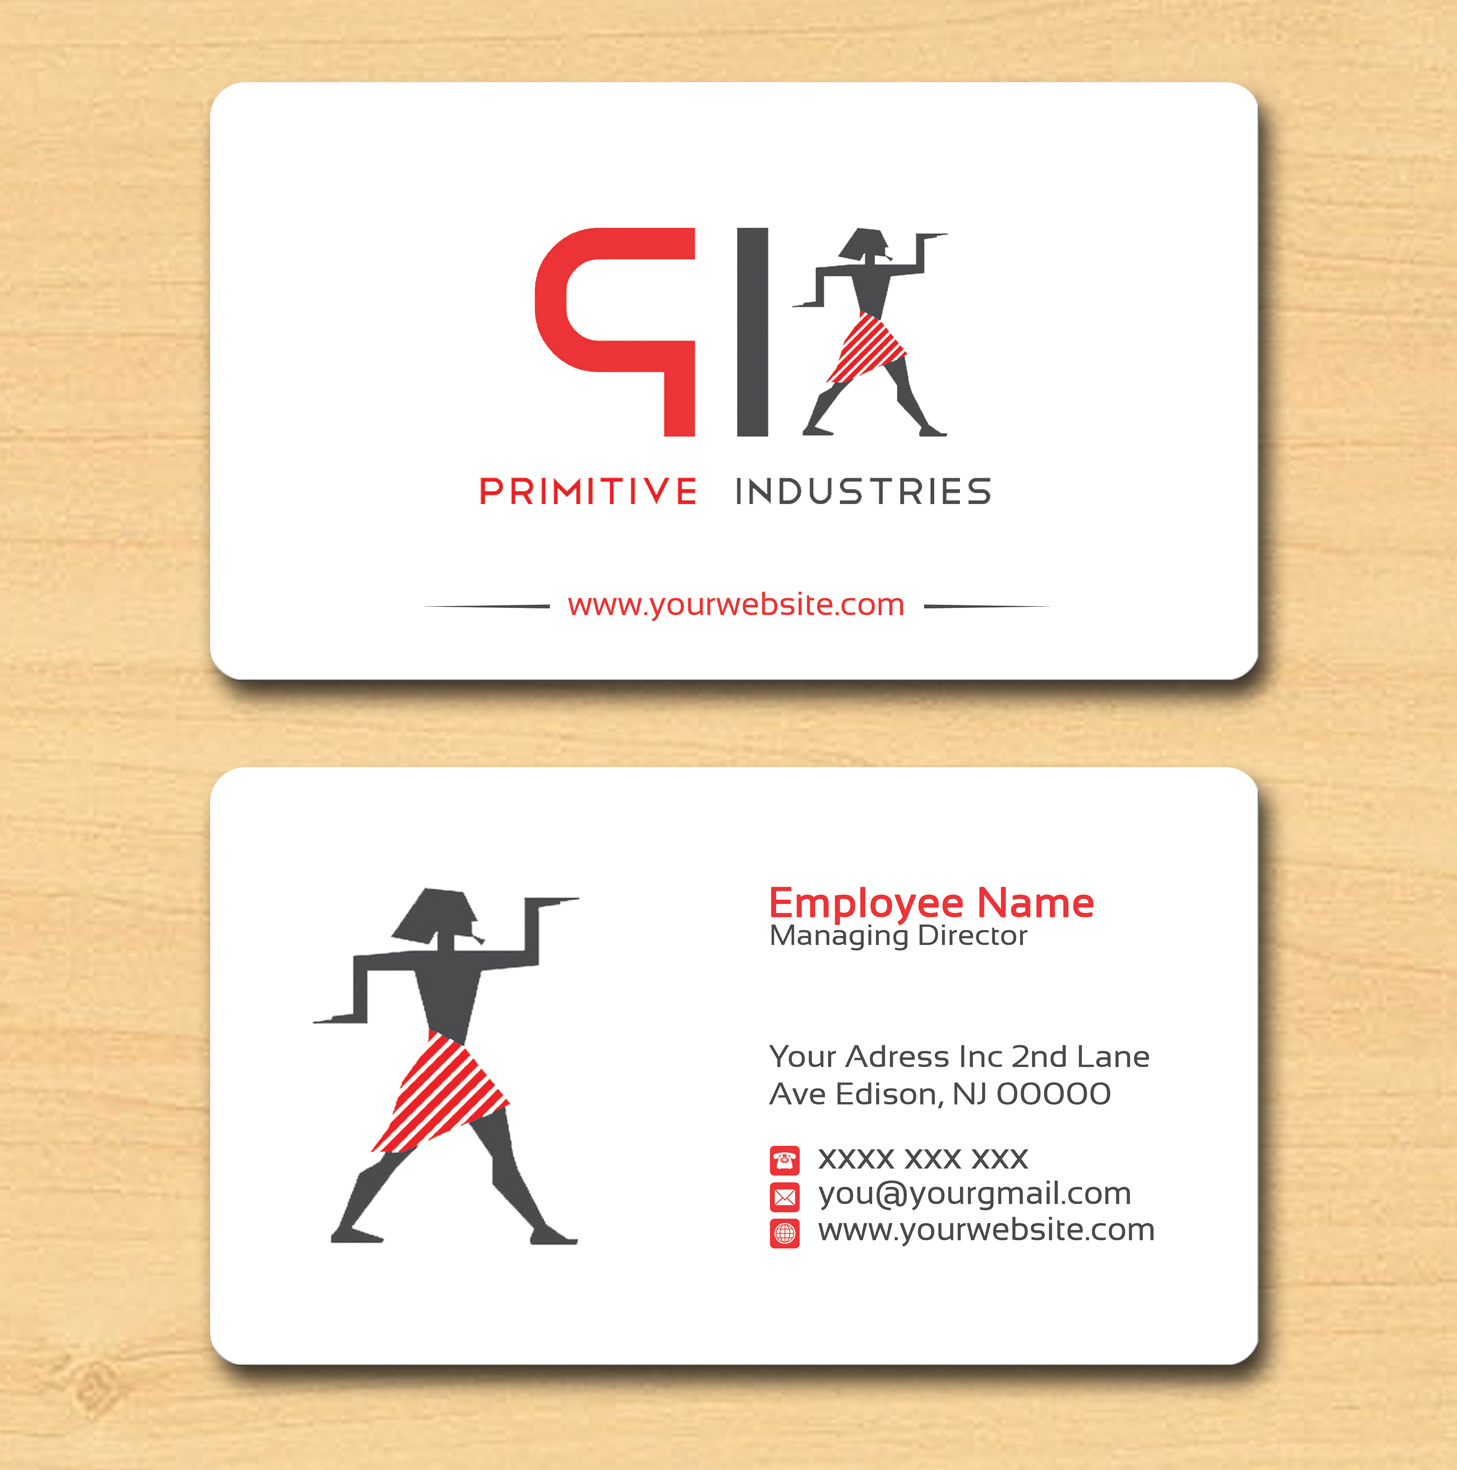 Bold serious business business card design for primitive bold serious business business card design for primitive industries in united states design 6113002 colourmoves